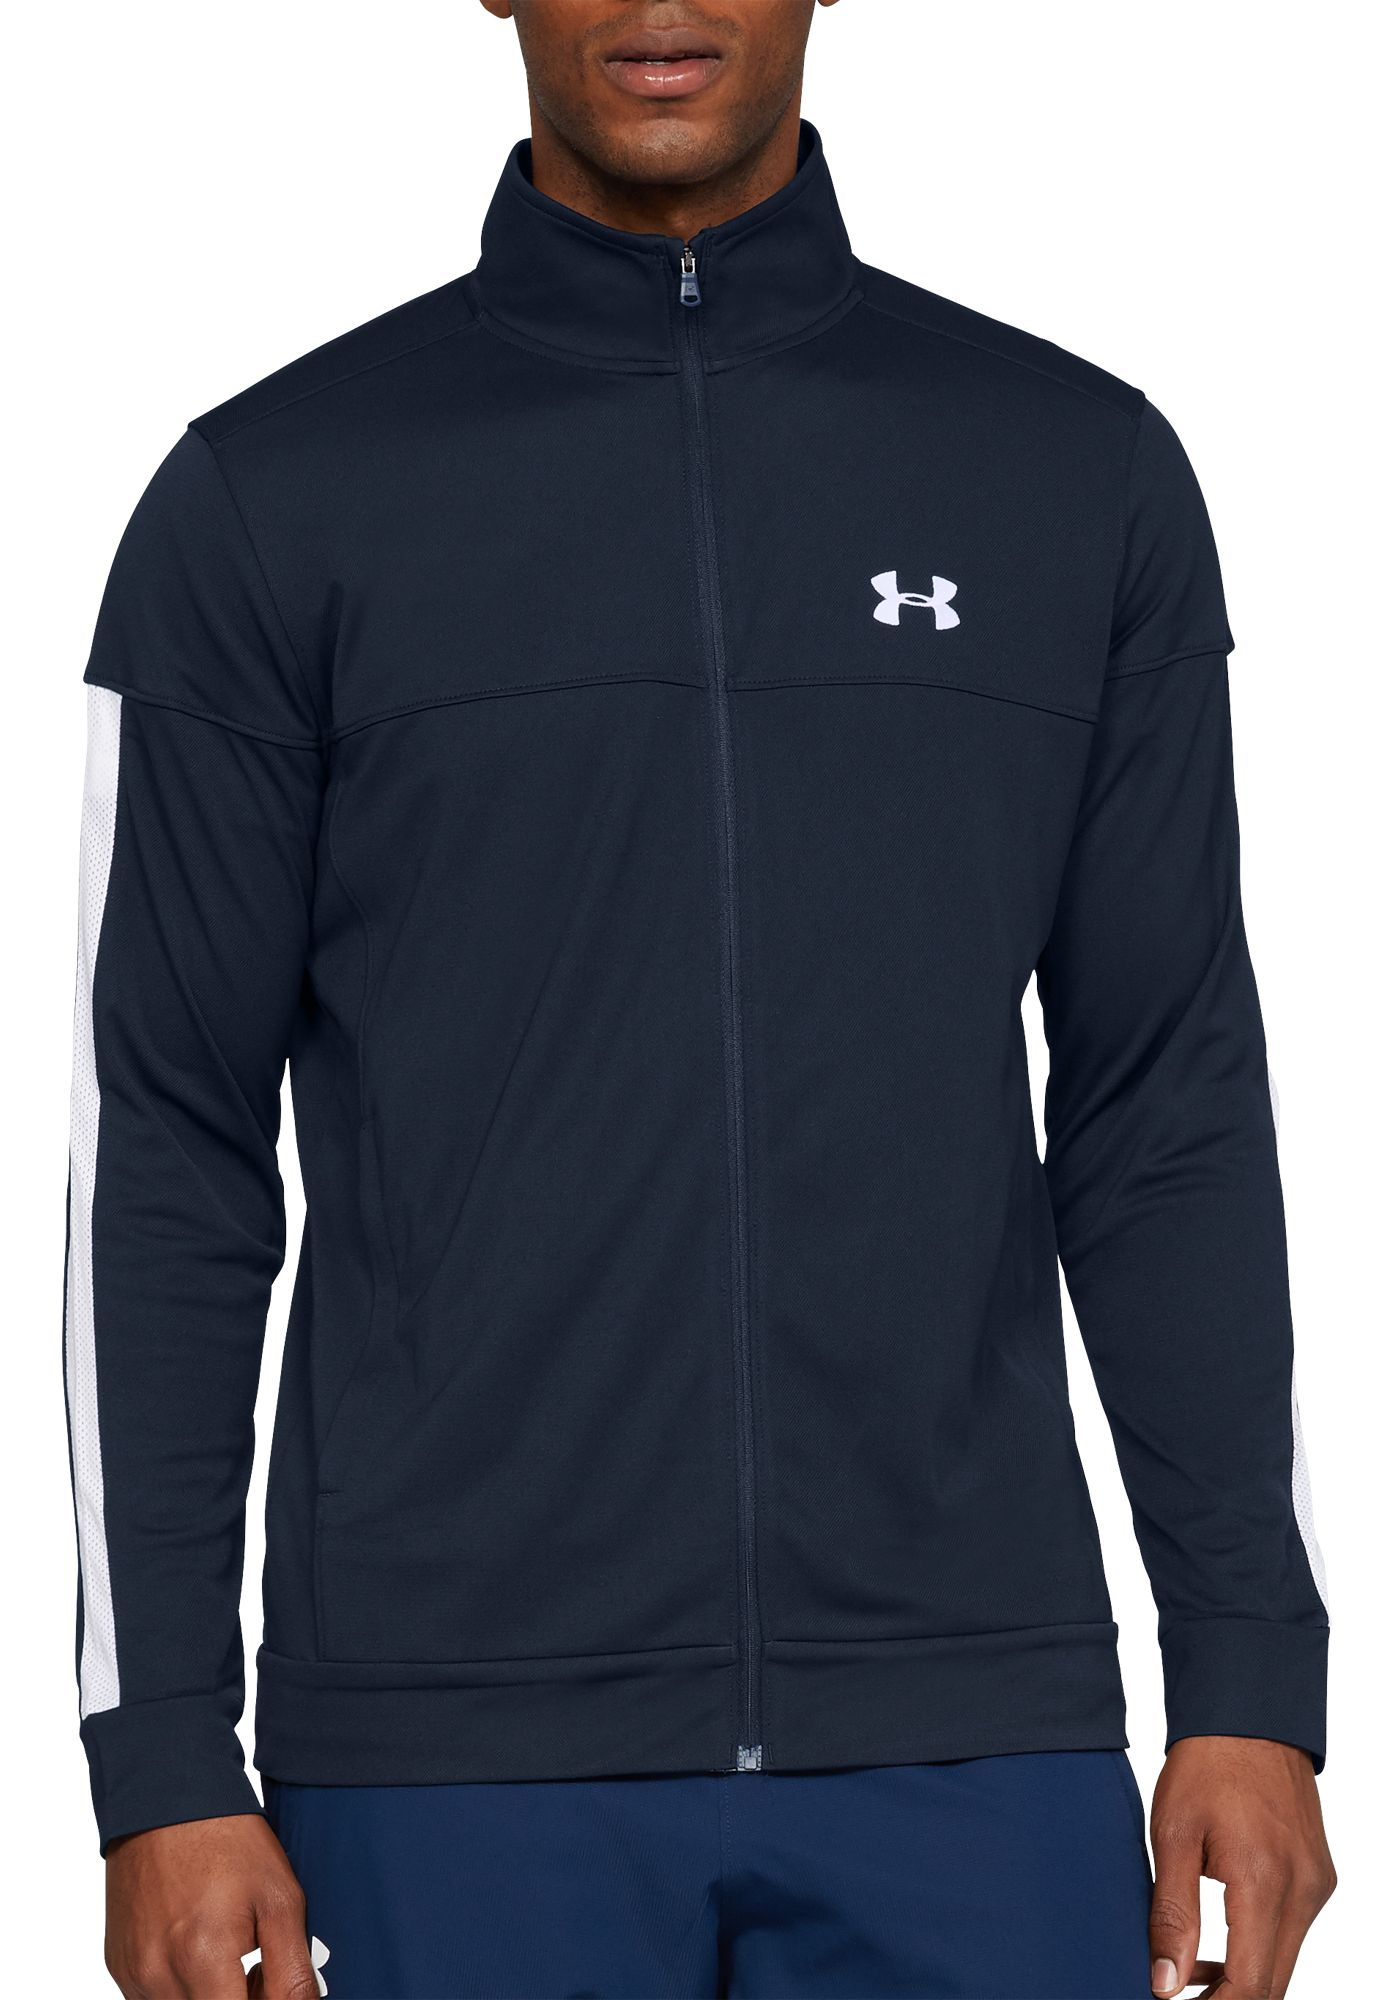 Under Armour Men's Sportstyle Pique' Full-Zip Jacket (Regular and Big & Tall)